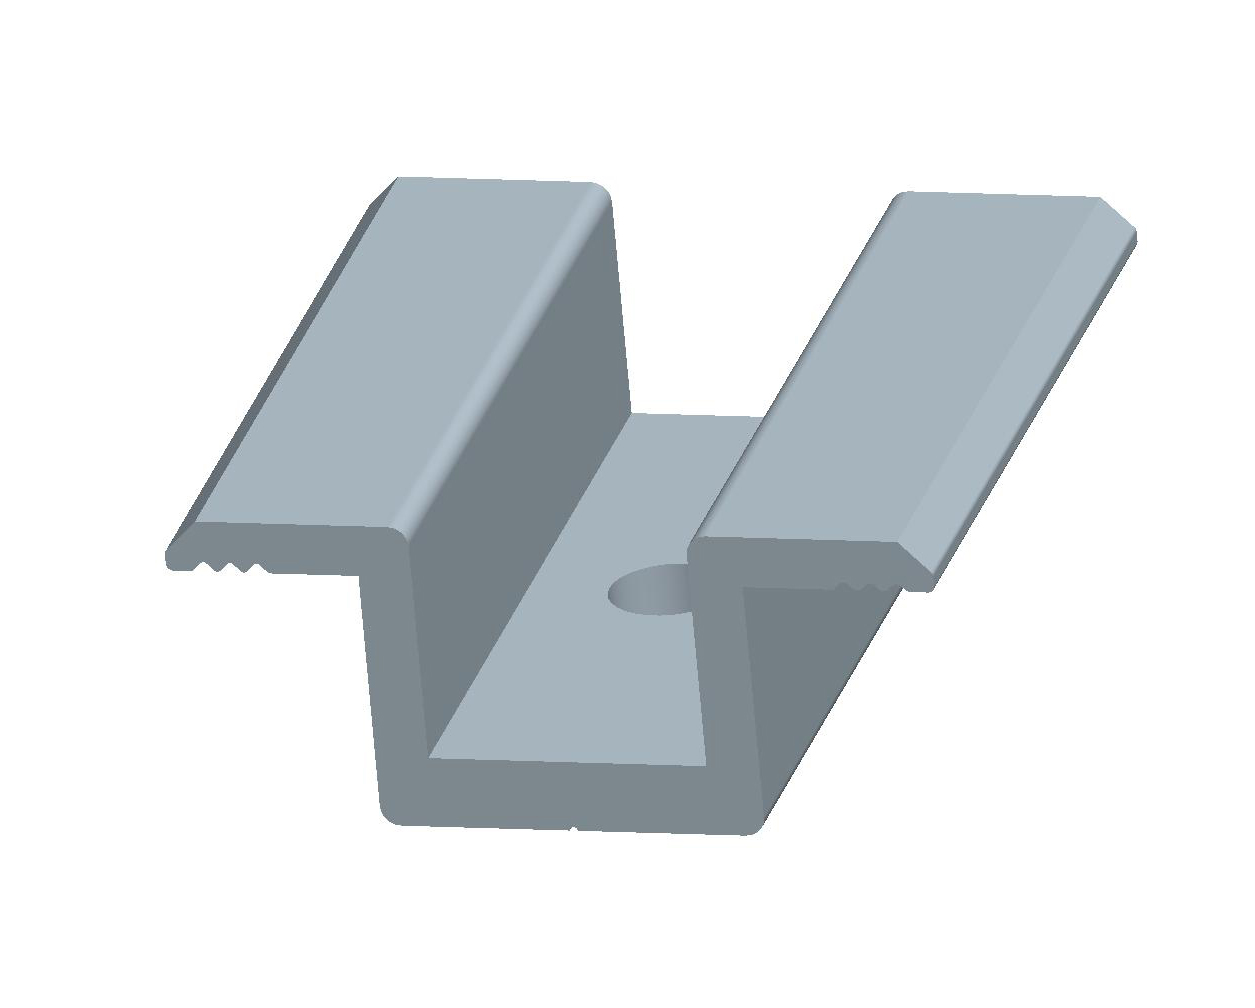 Eend and inter clamp for railless ballasted roof mounting system